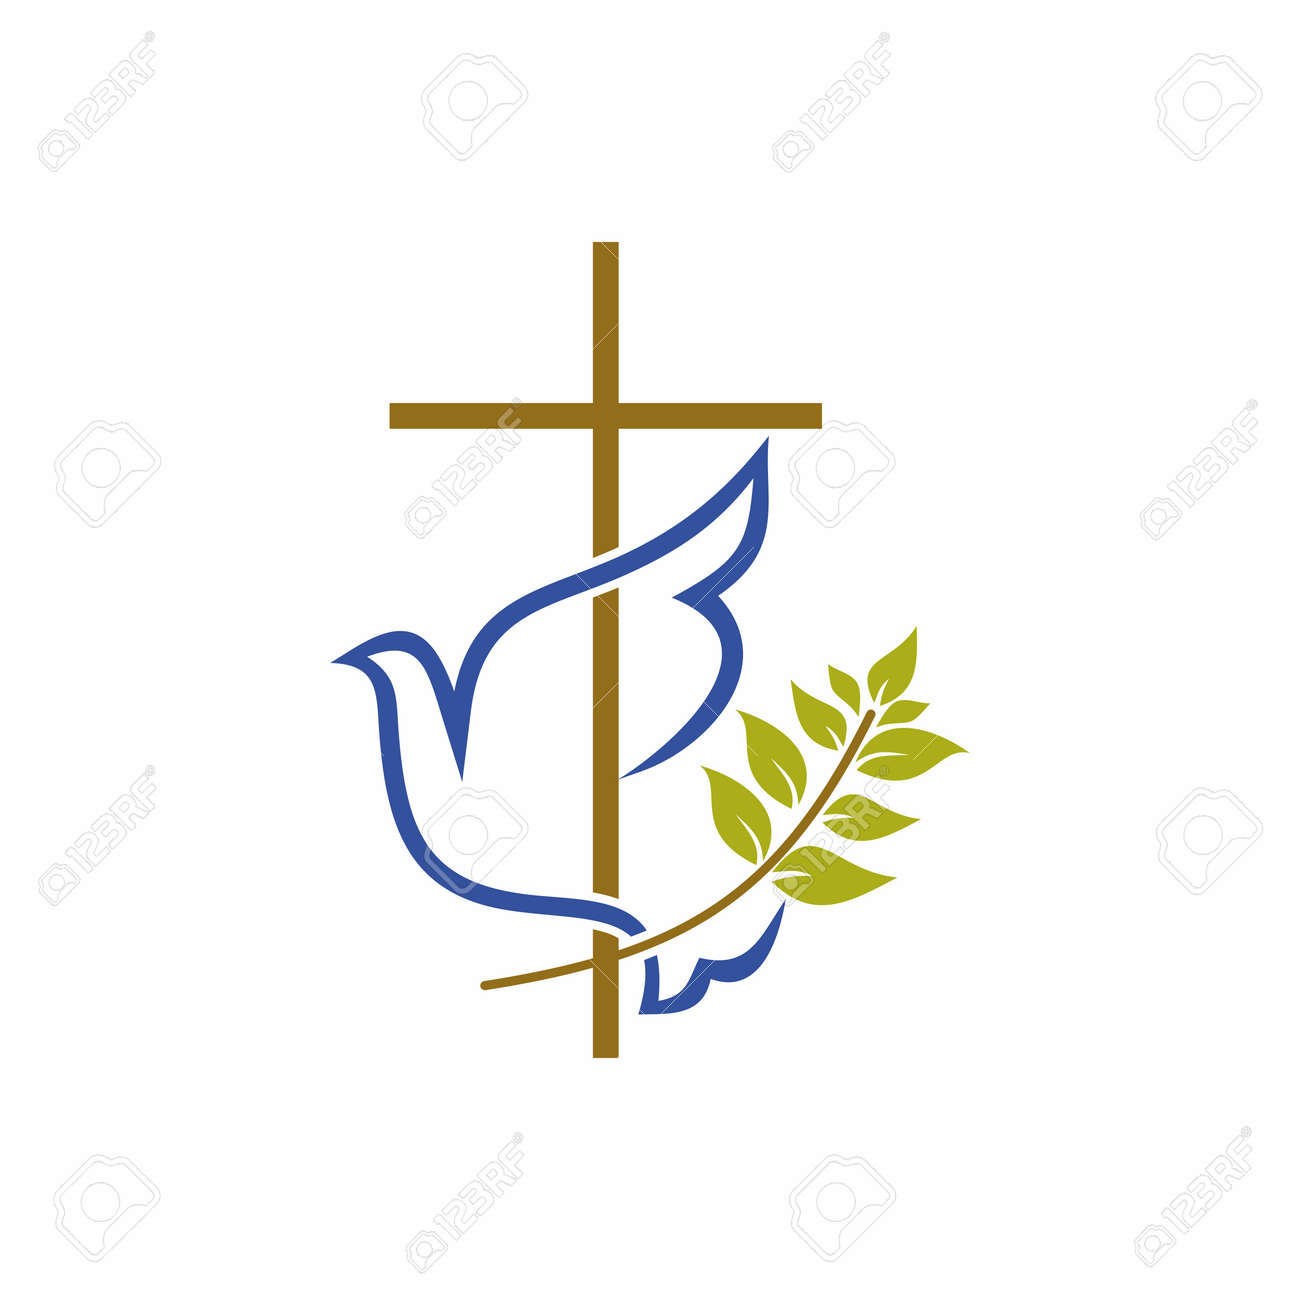 Church logo christian symbols cross dove and olive branch christian symbols cross dove and olive branch stock vector biocorpaavc